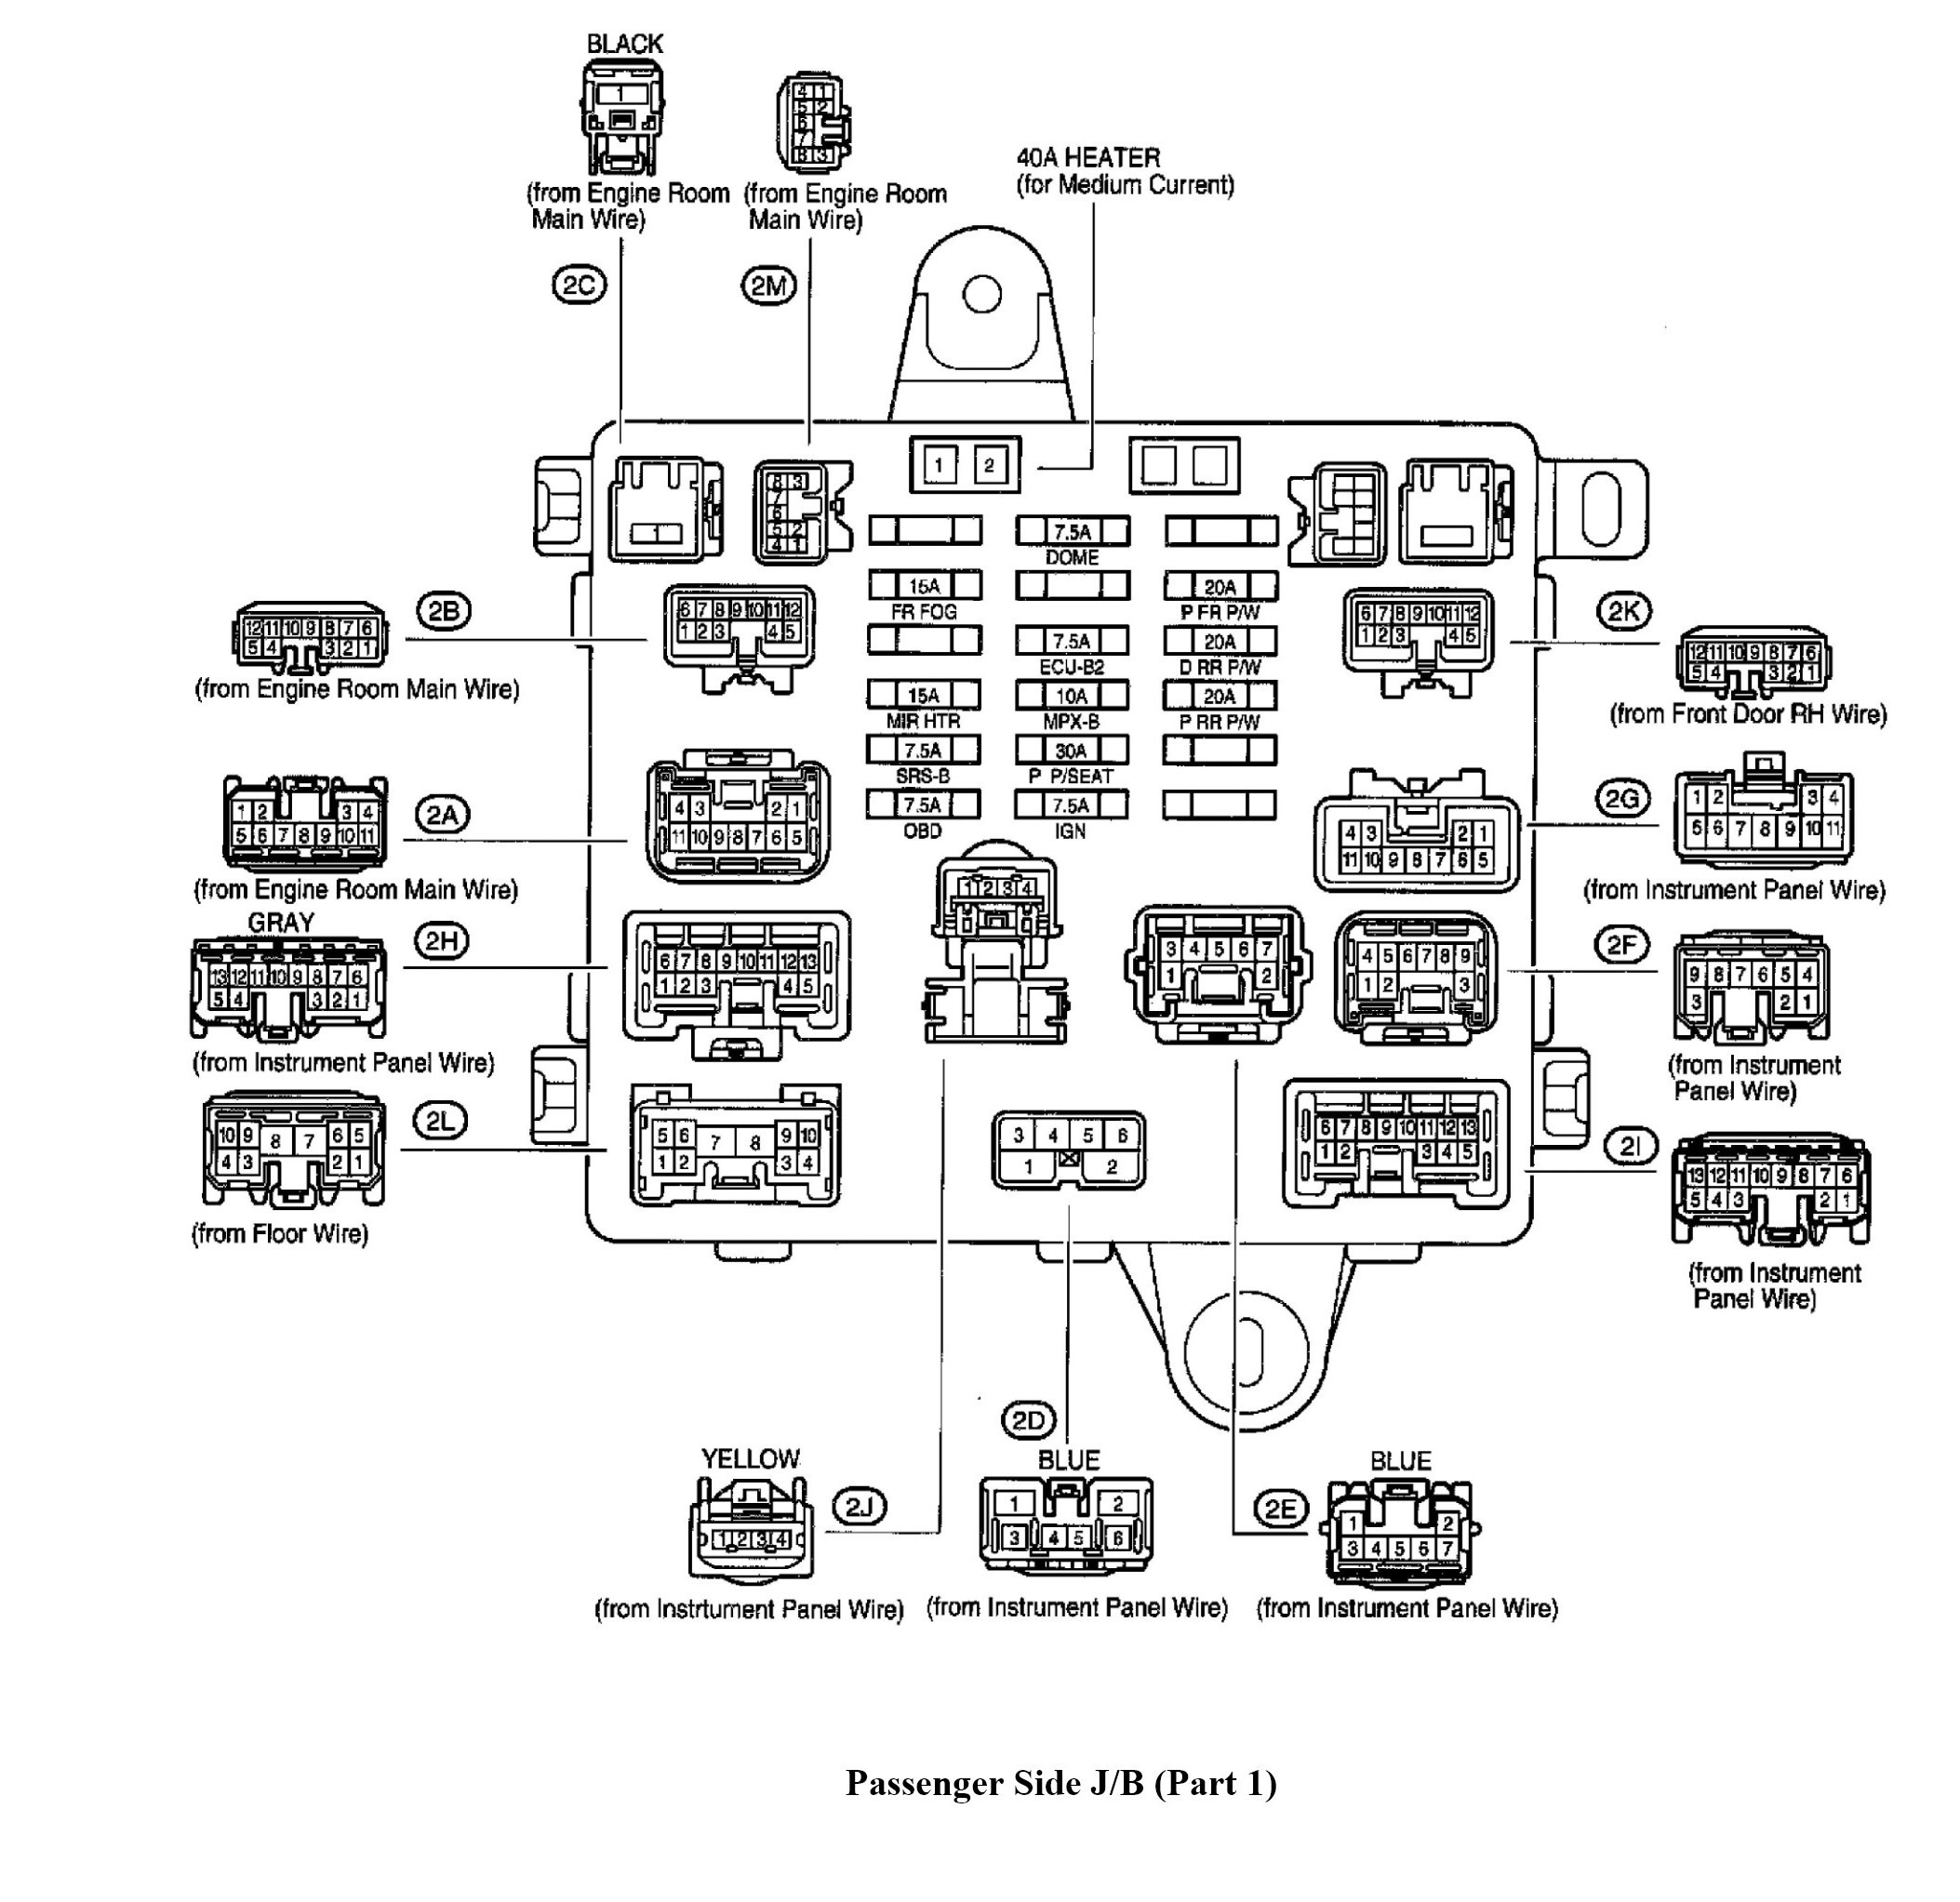 Breaker Sub Panel Wiring Diagram